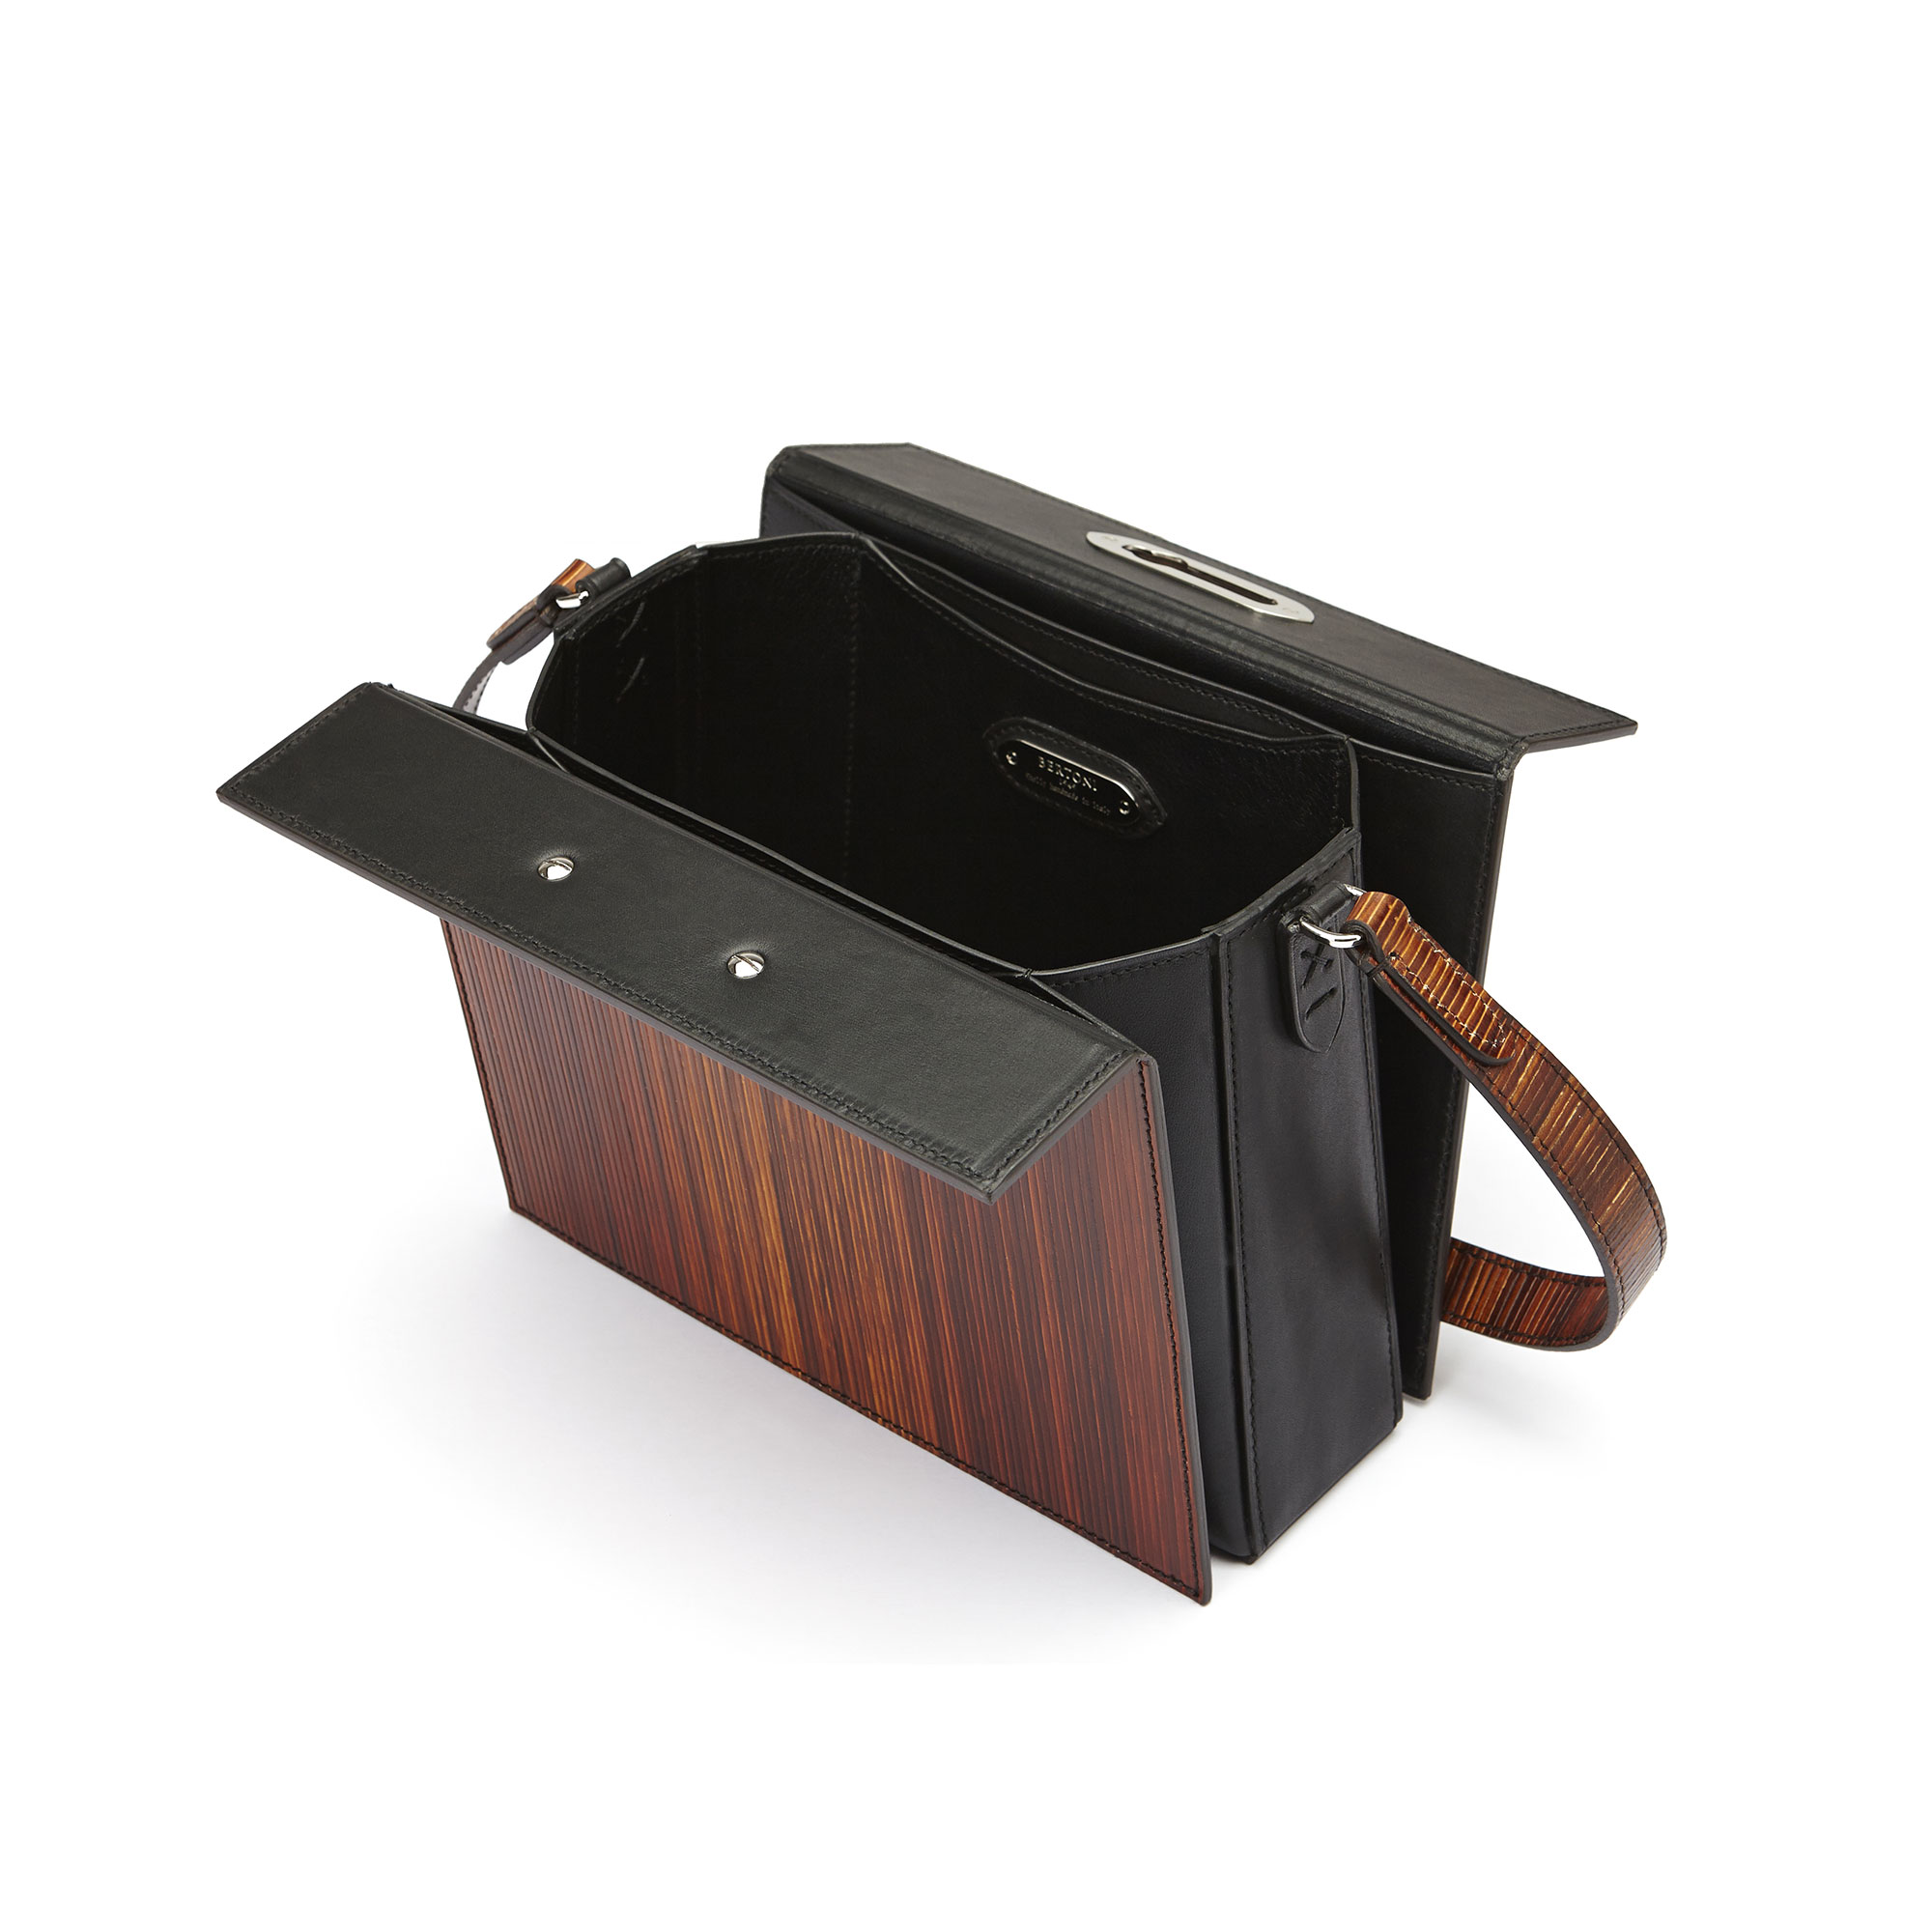 The black effect wood leather french calf Gemma Crossbody bag by Bertoni 1949 03